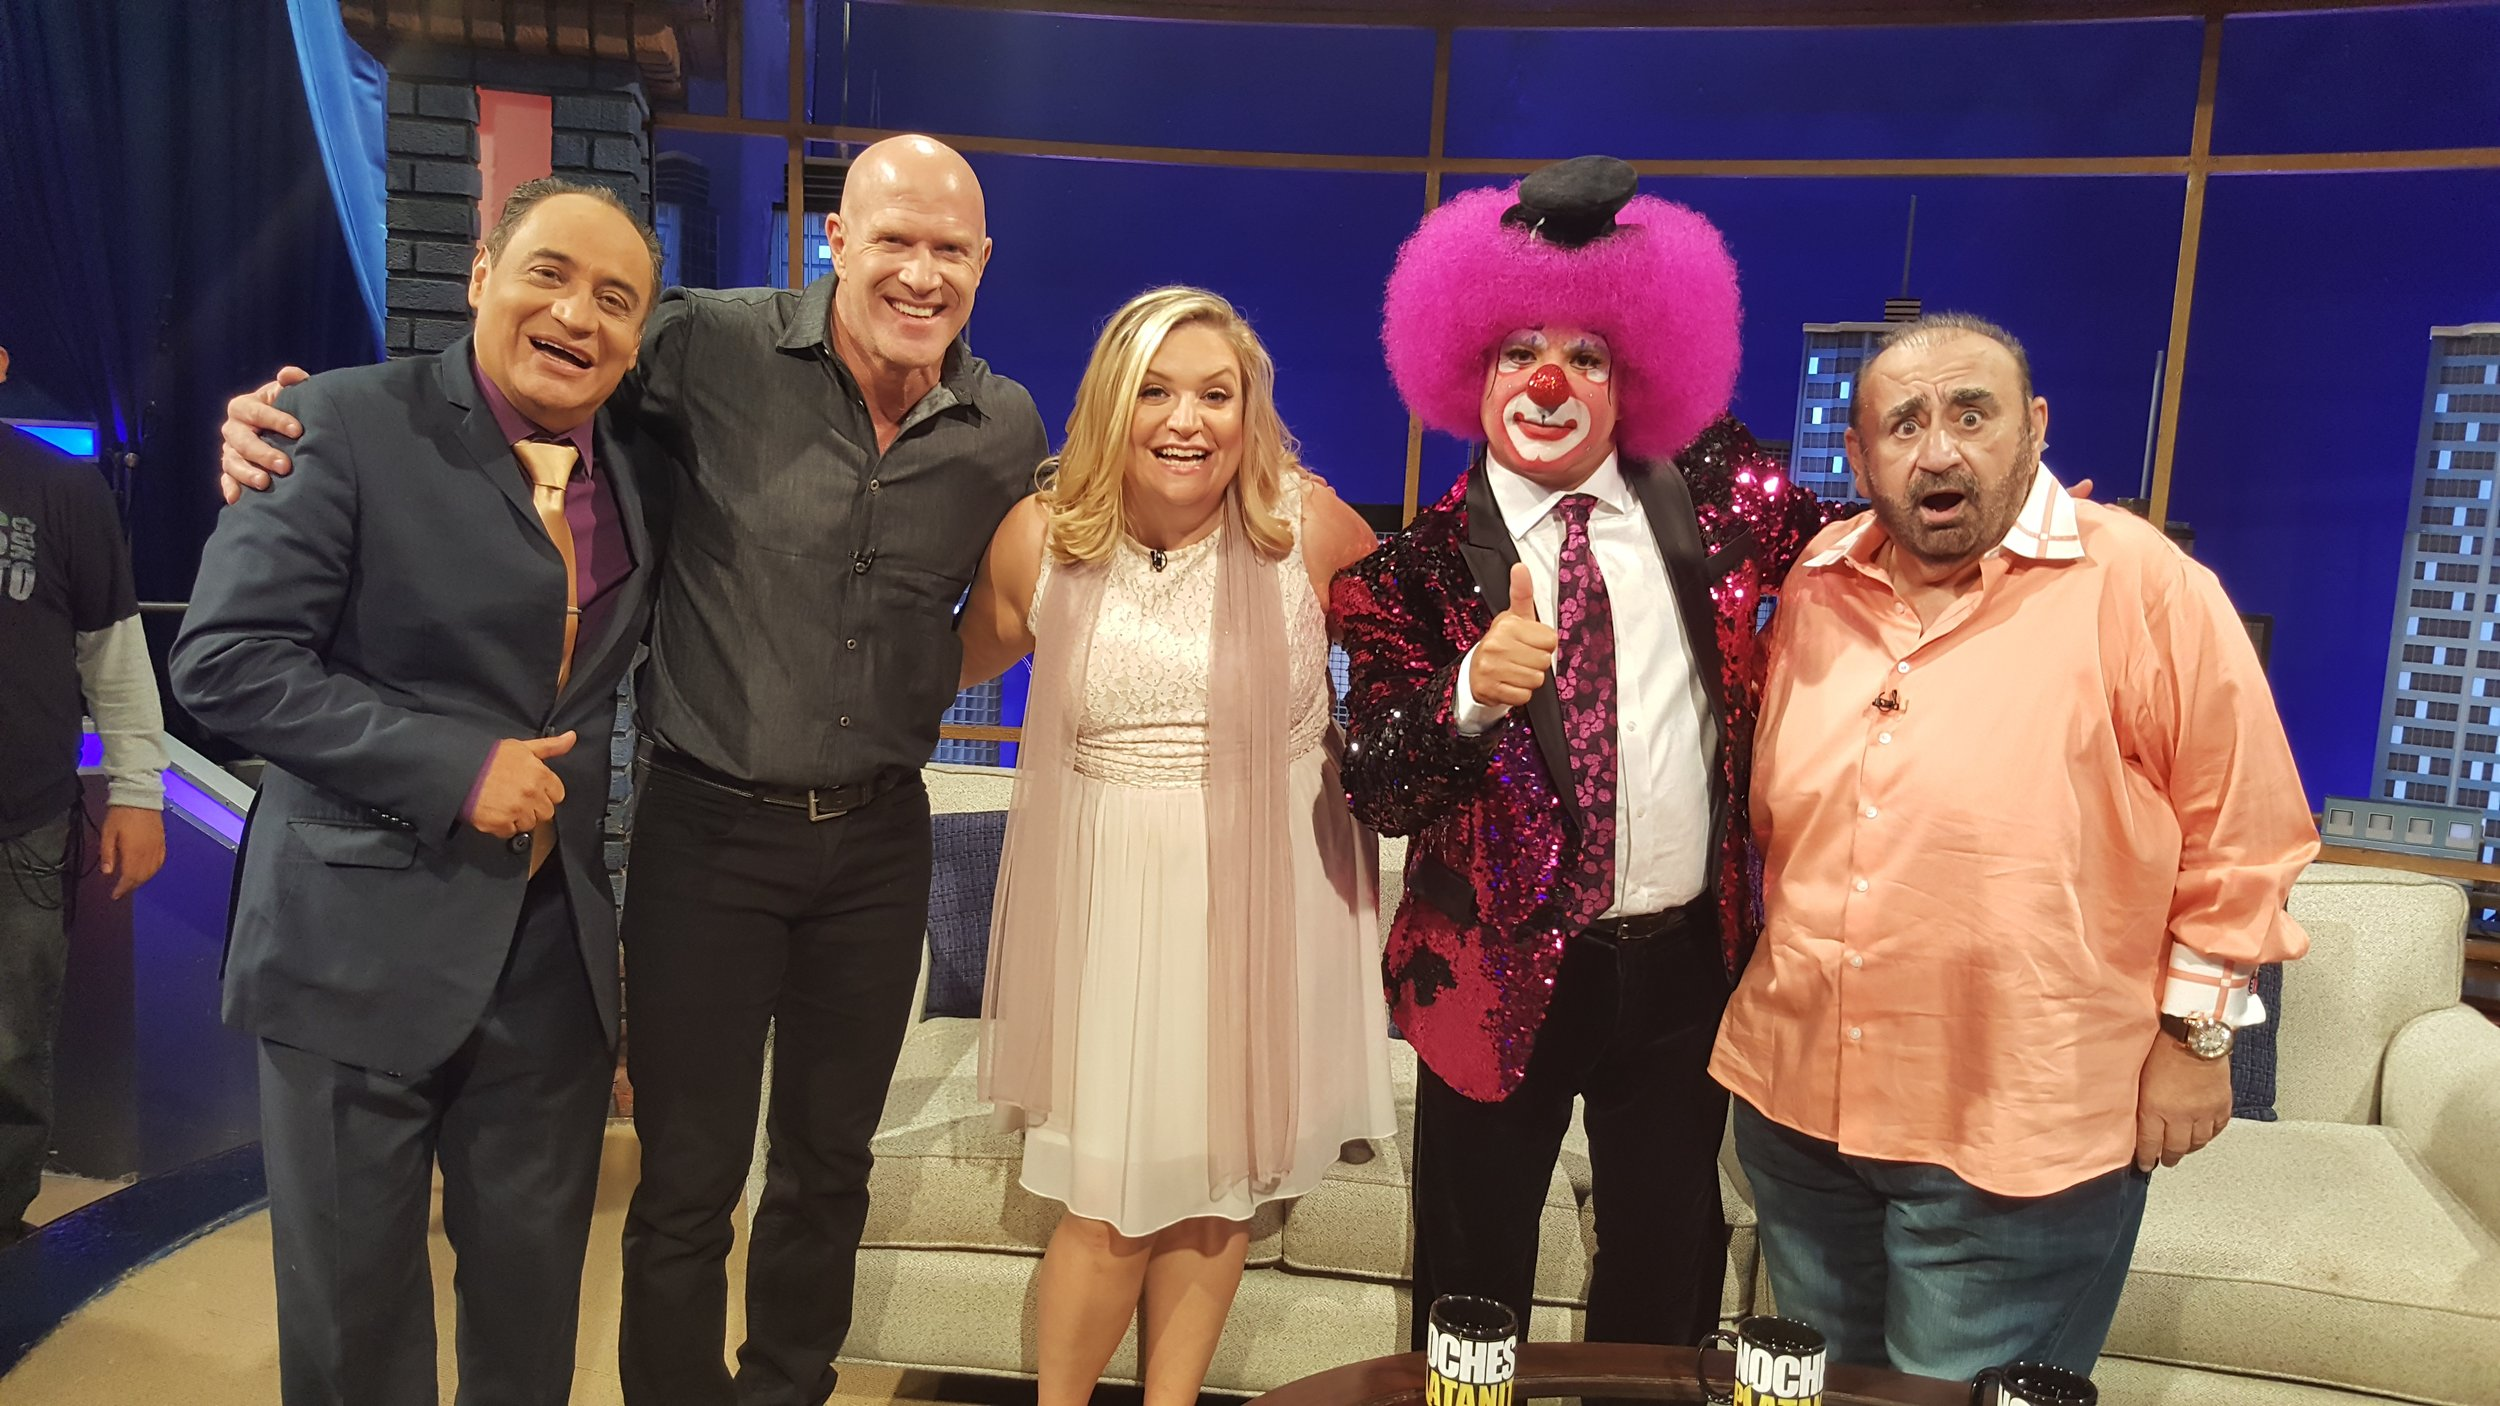 Mary Kennedy on Noches con Platanito